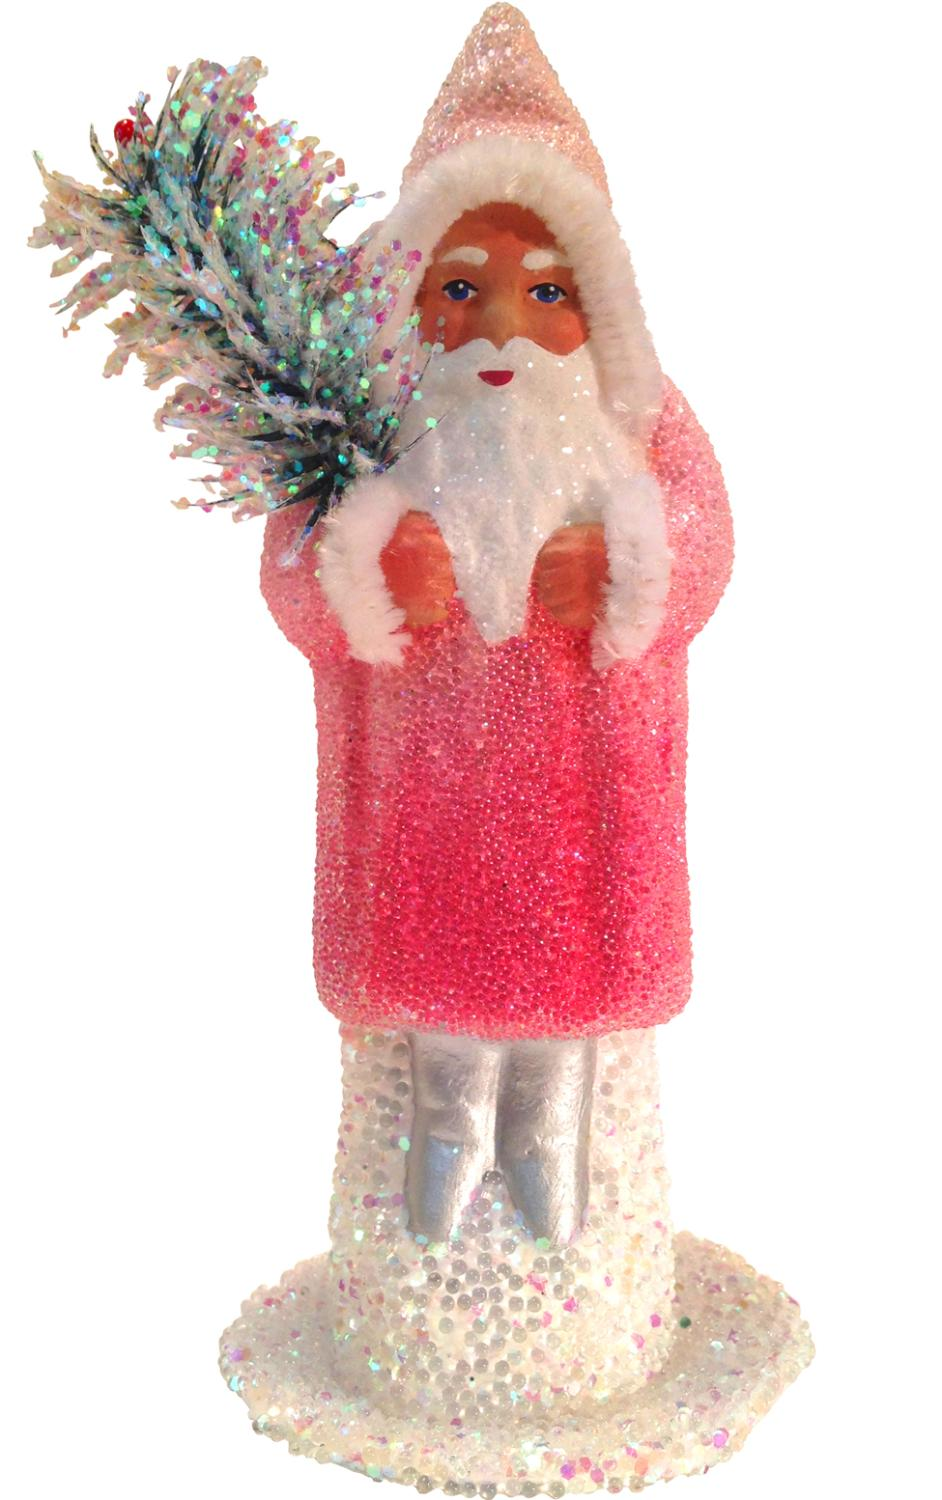 01514 - Schaller Paper Mache Candy Container - Santa Rose Coat with Glitter - 6.5